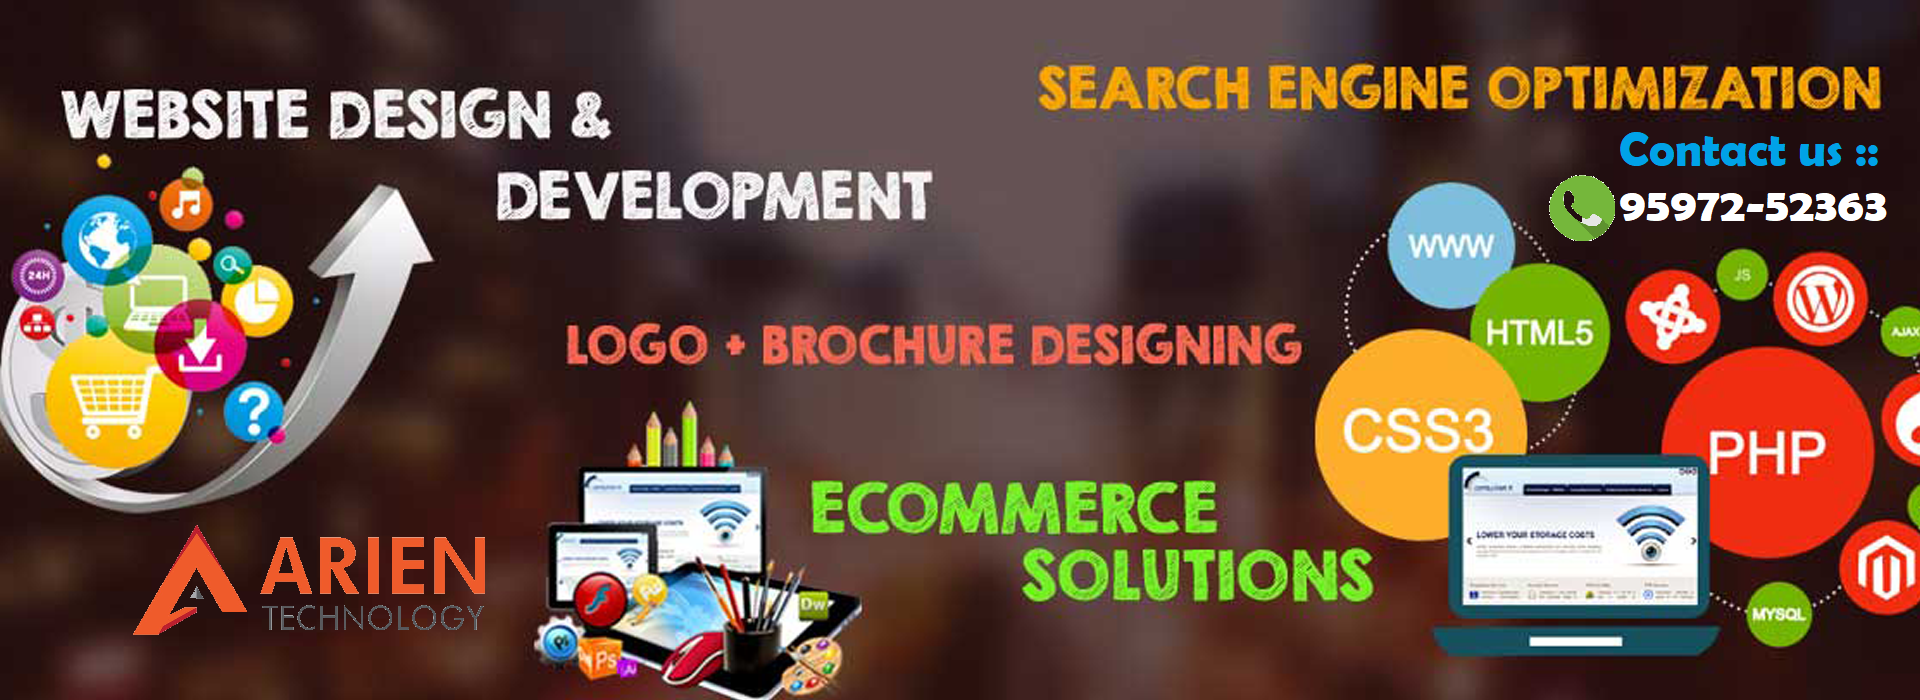 Arien Technology Best Web Design Company In Coimbatore Best Web Development Company Coimbatore Website Designer In Coimbatore Web Development Company In Co Ecommerce Website Development Website Design Web Development Company